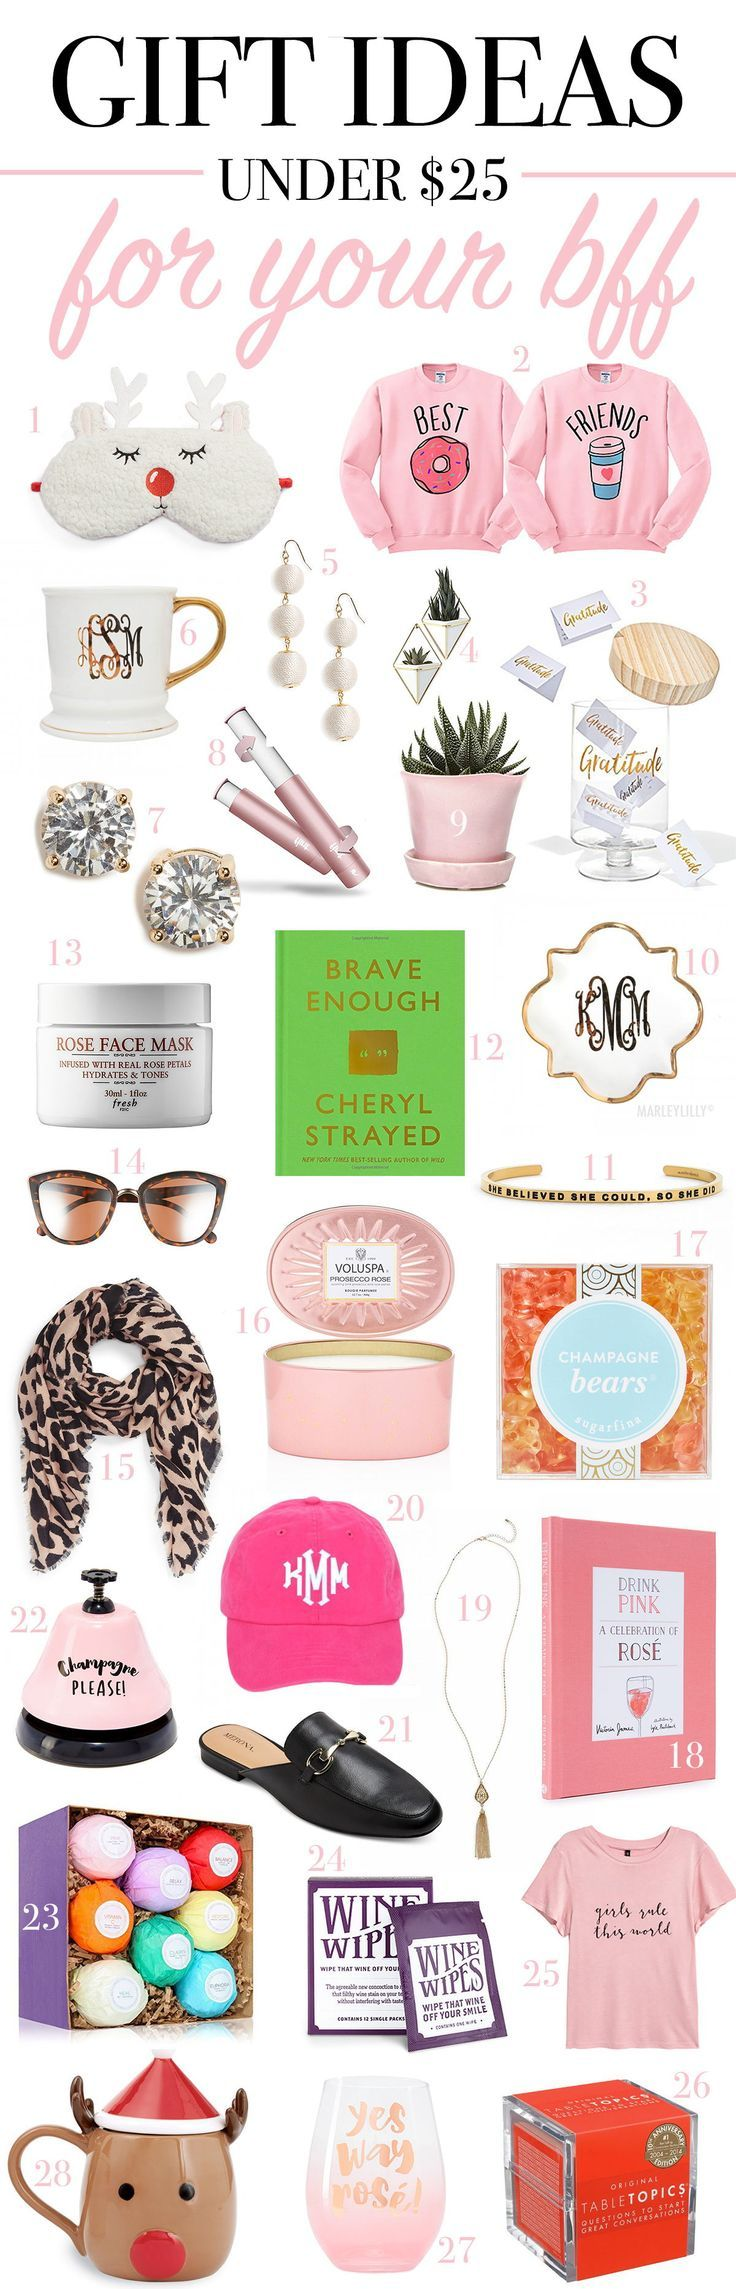 Gifts for Women under 25: 28 Affordable Christmas Gift Ideas for Her